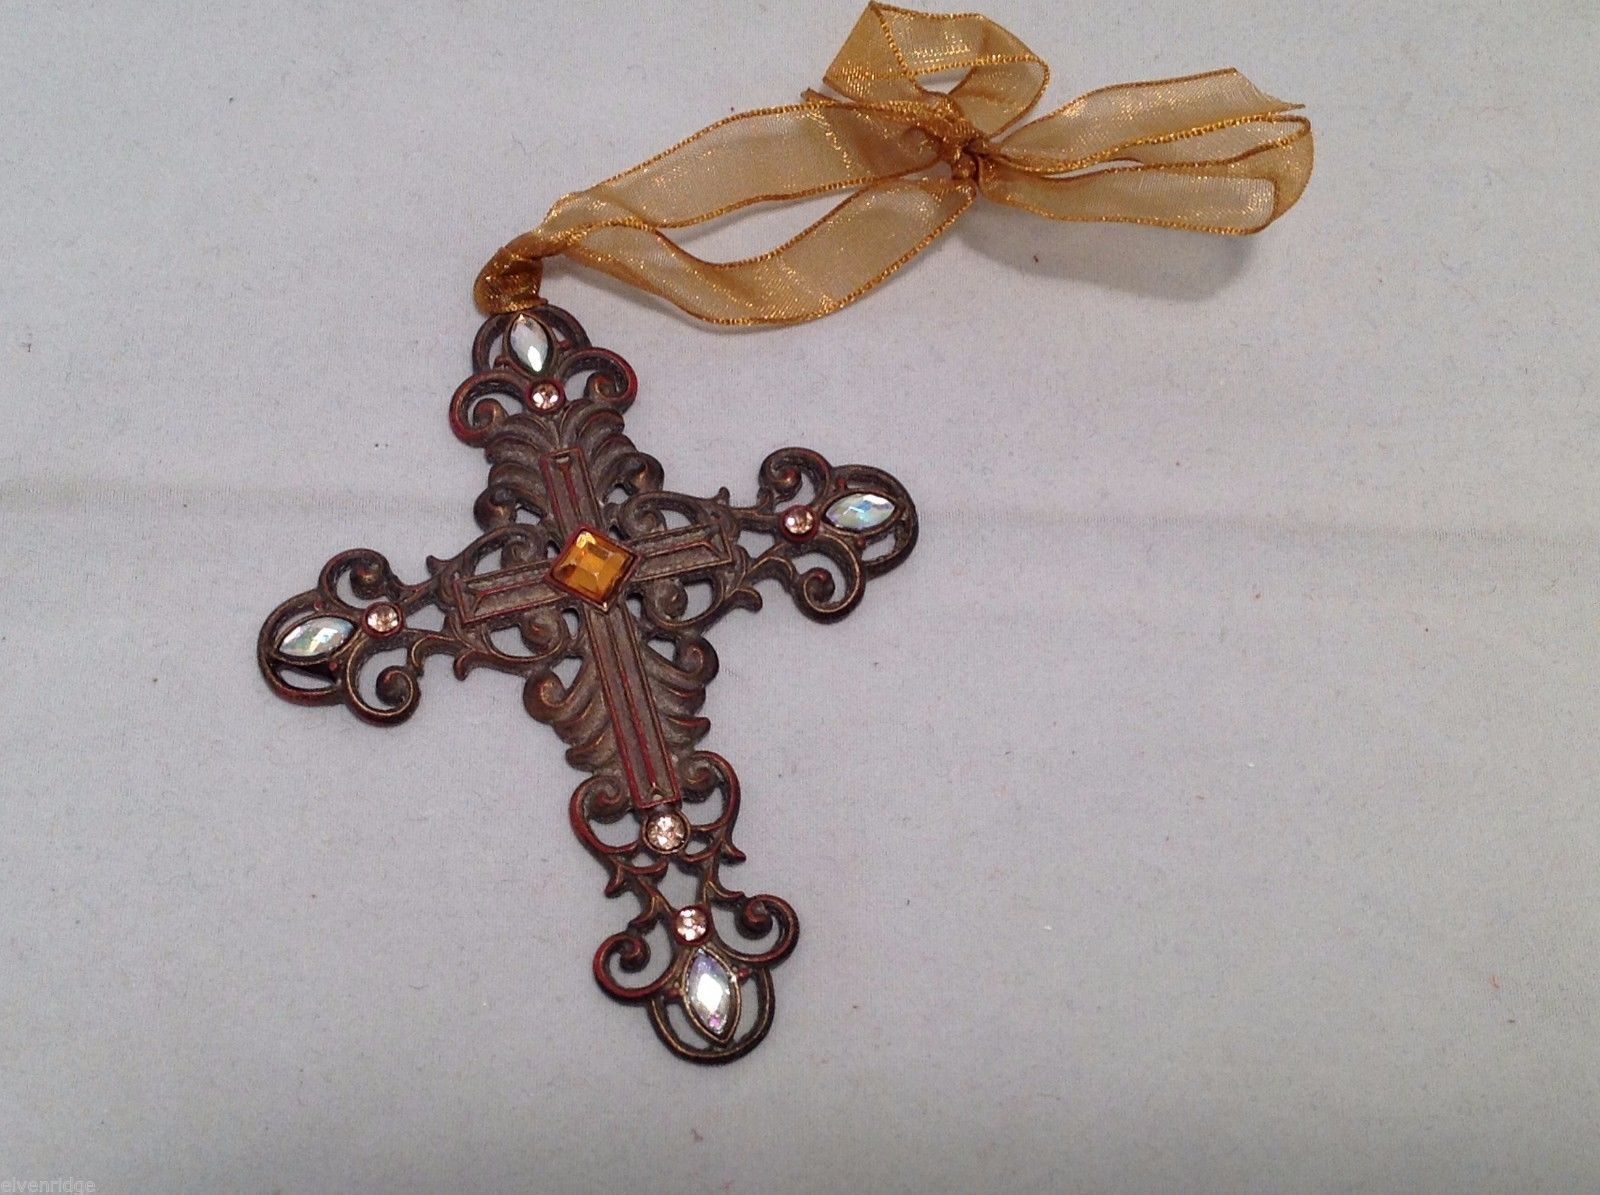 Vintage Look  Cross Ornament w sparkly white stones and yellow center stone NEW